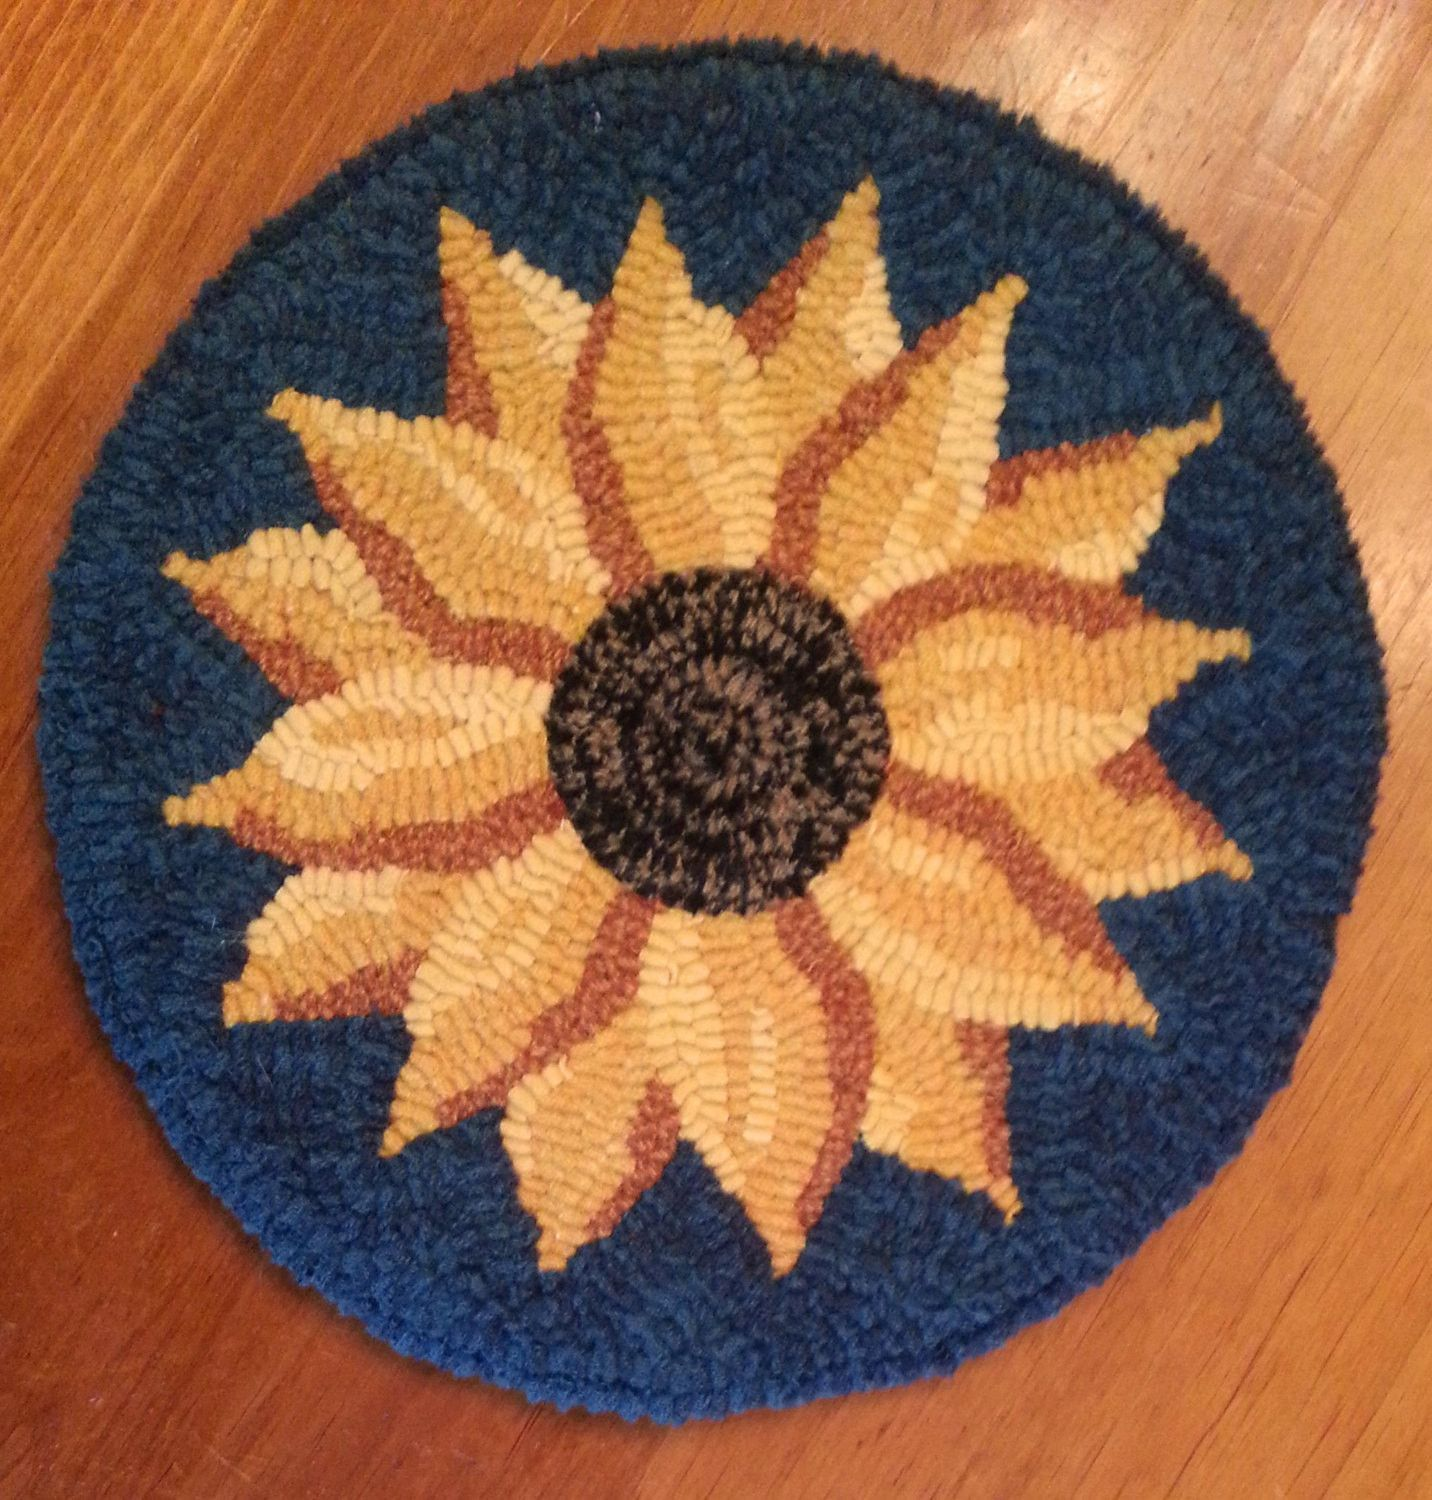 Hooked Rug Pattern - Evening Sunflower - 12